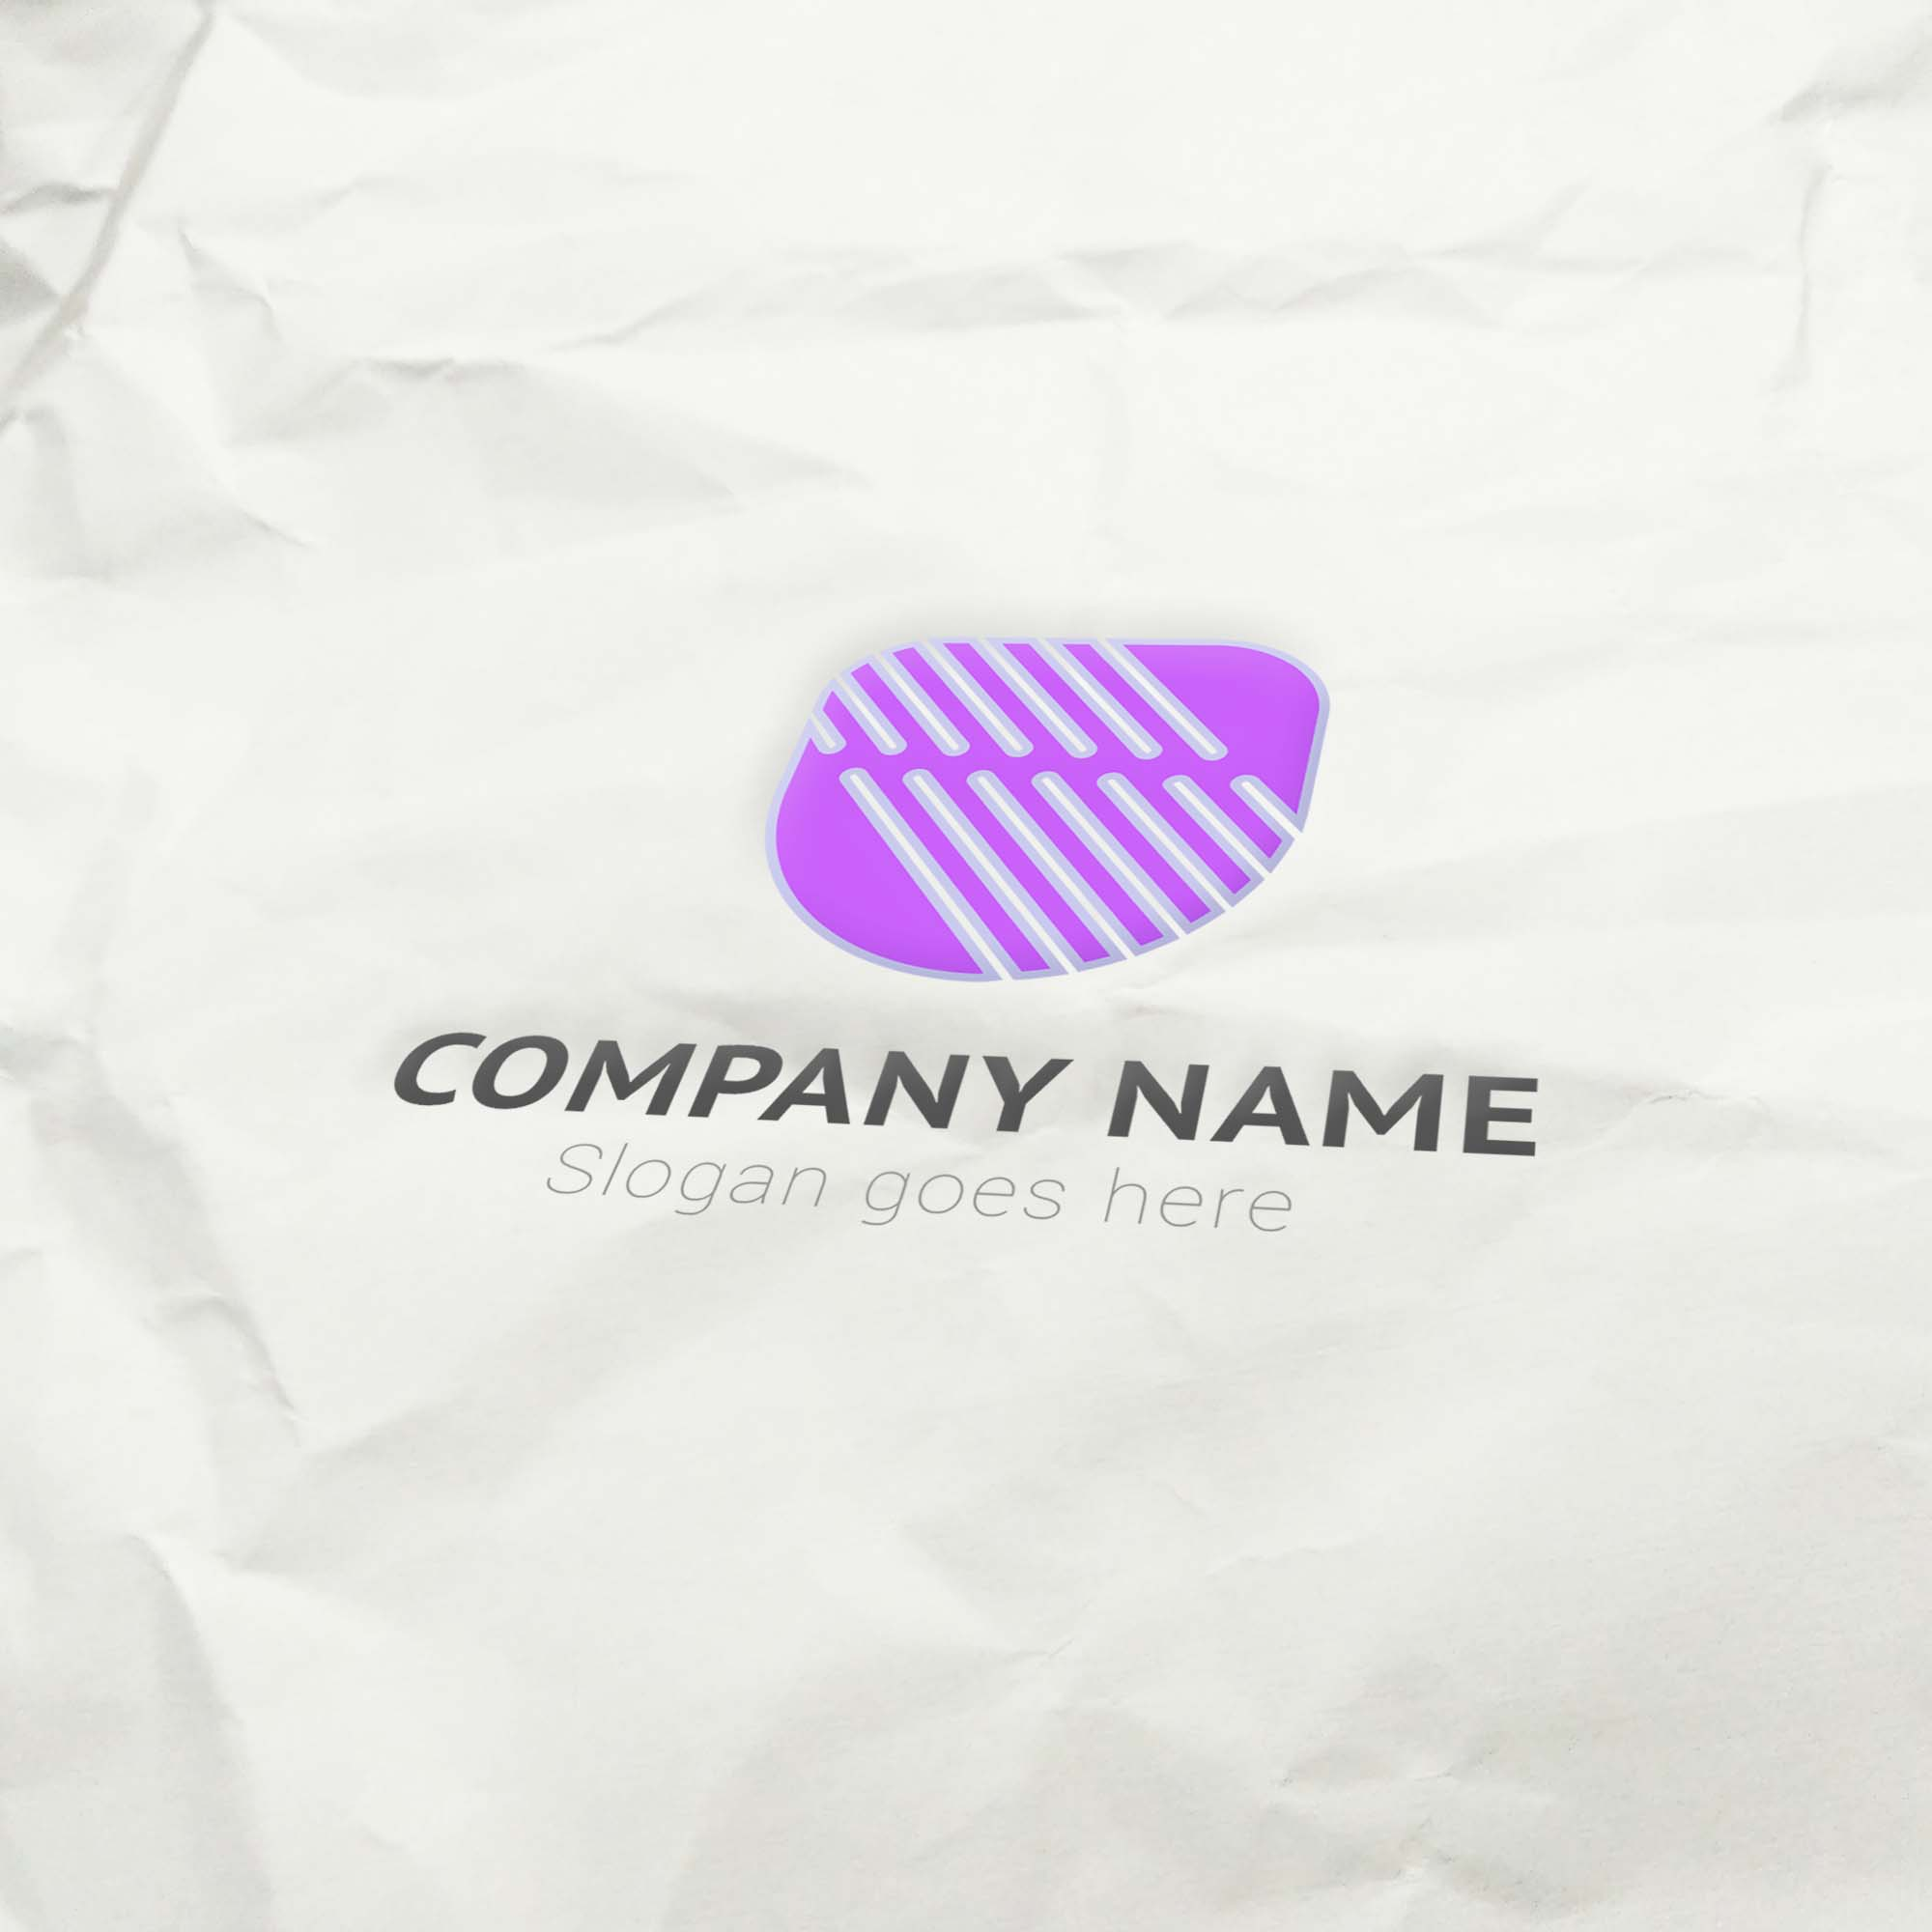 Protection logo template vectors free download wisxi protection logo template vector safety security business free vector wajeb Images